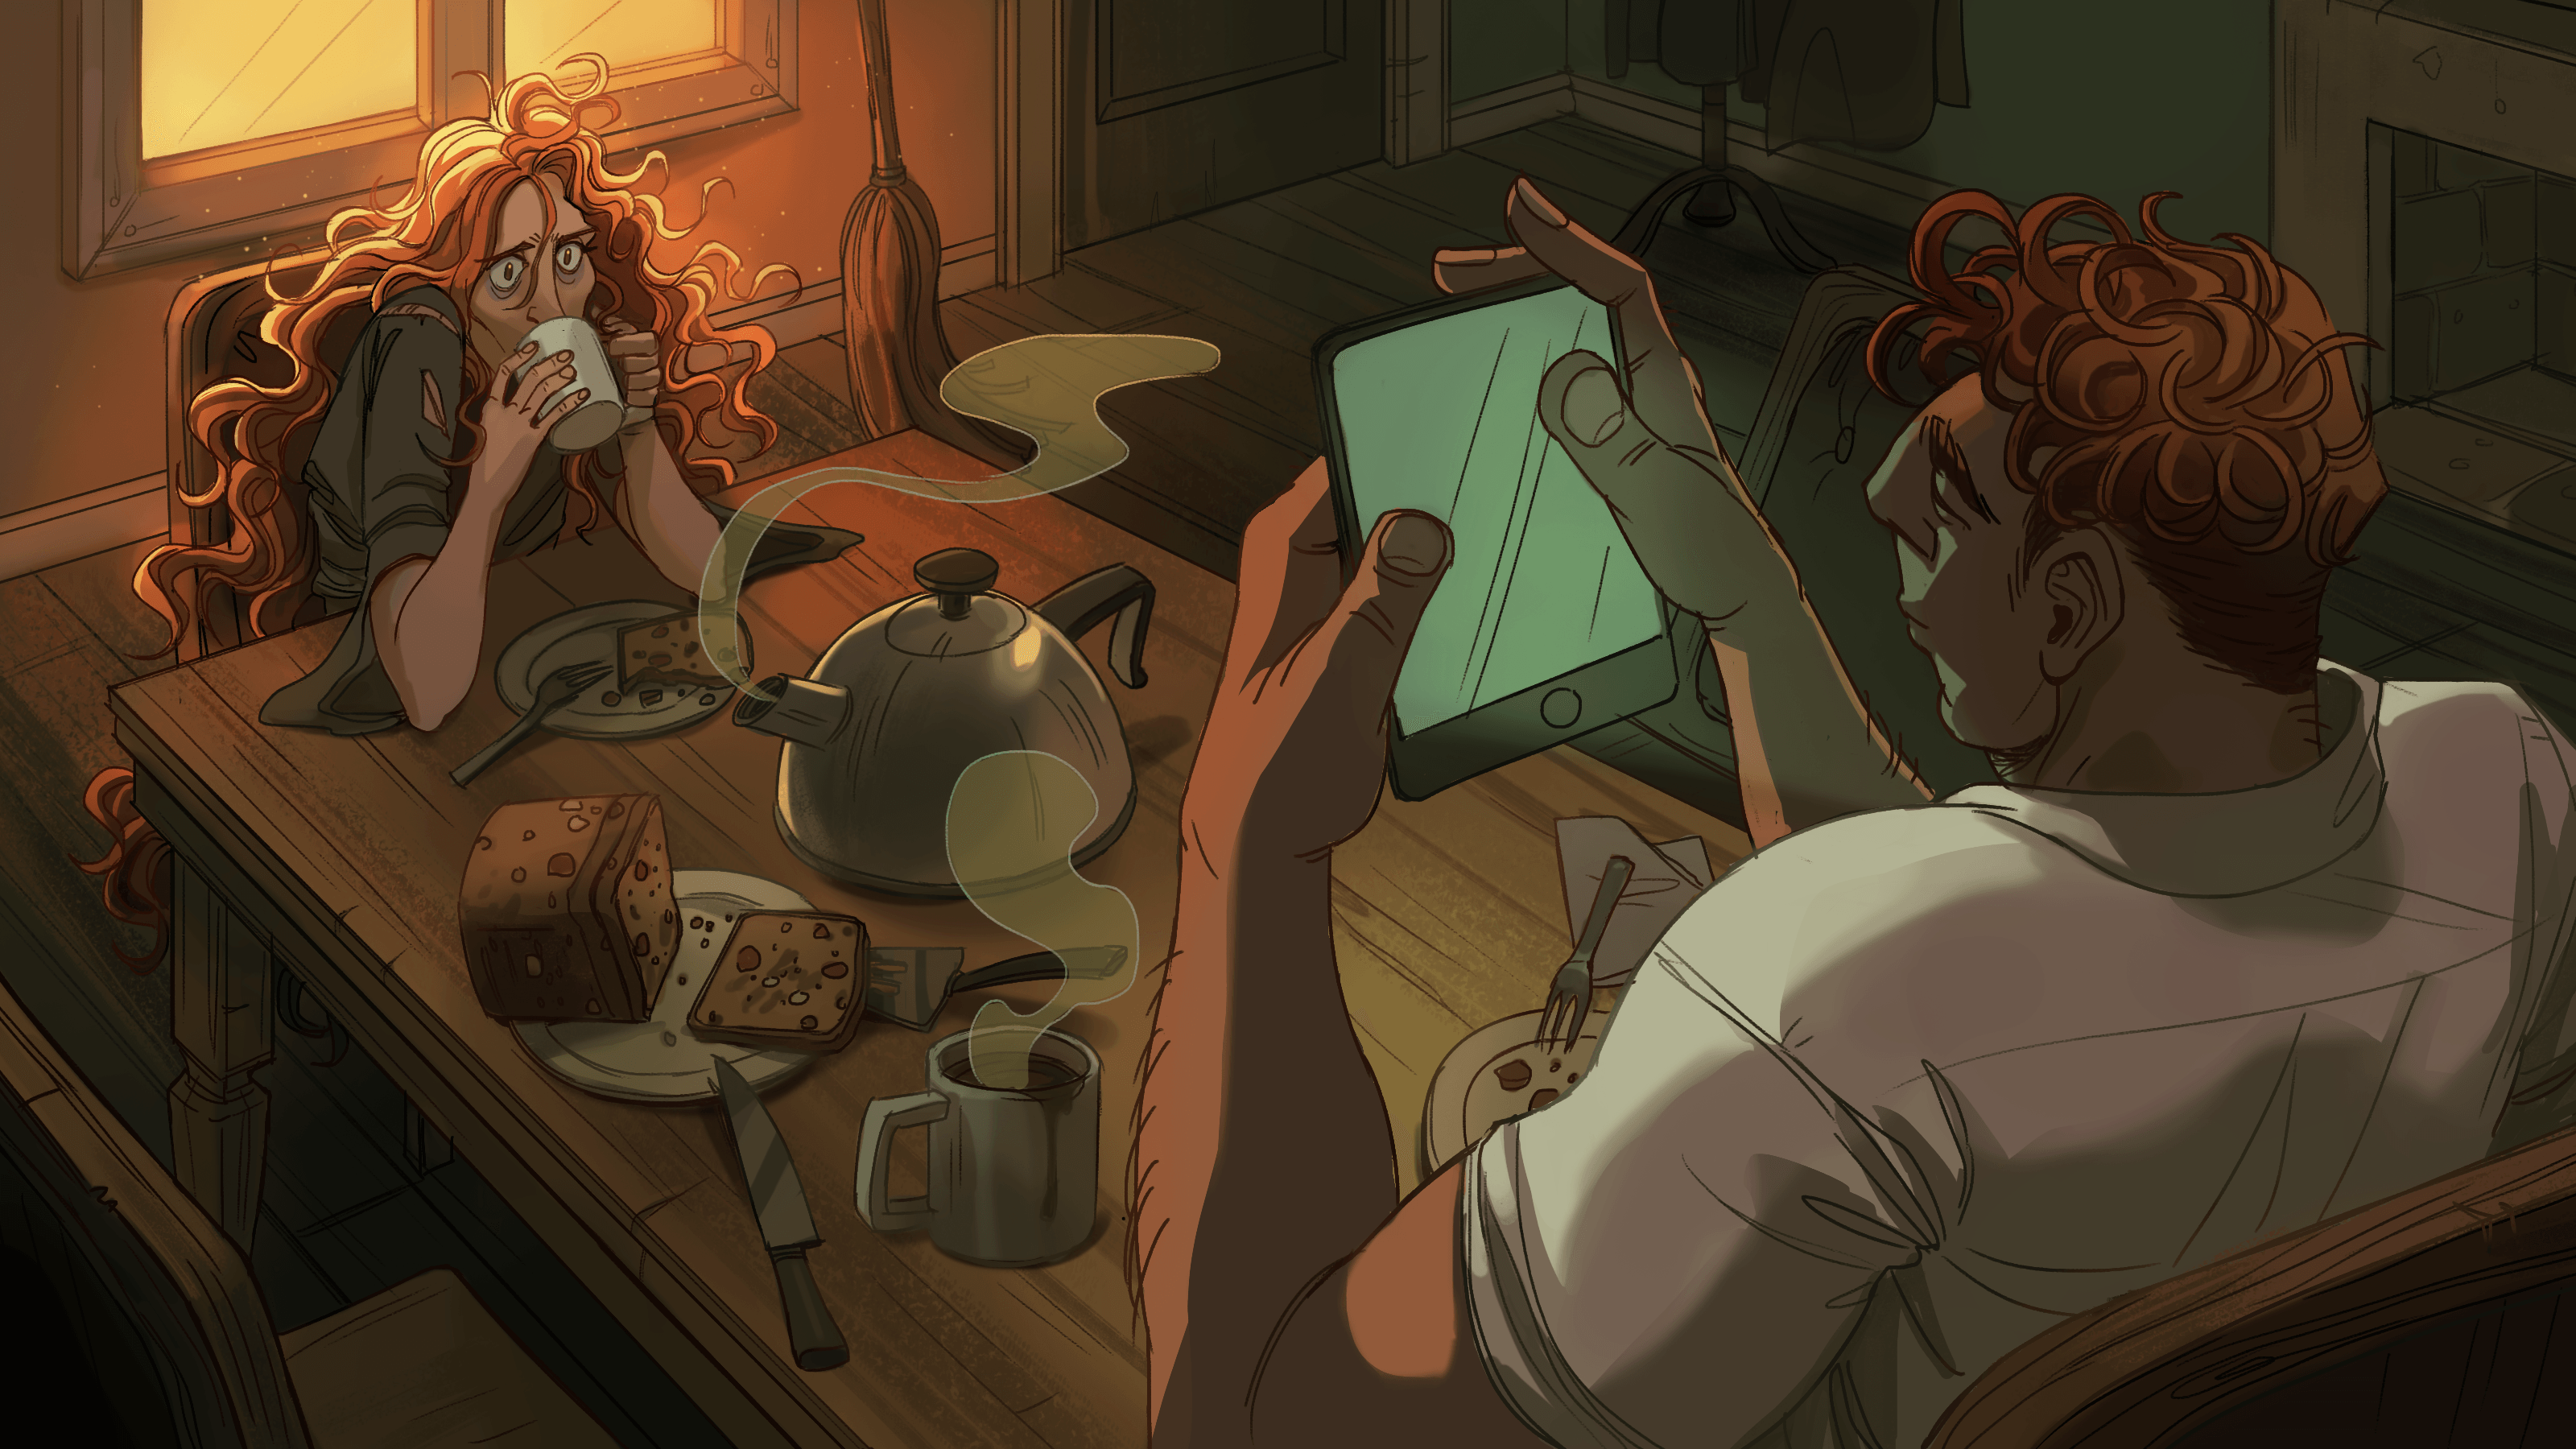 A frazzled woman sits at a table, sipping from a cup of tea. She looks sleep-deprived. A gigantic man sits across from her, idly looking at his tablet.